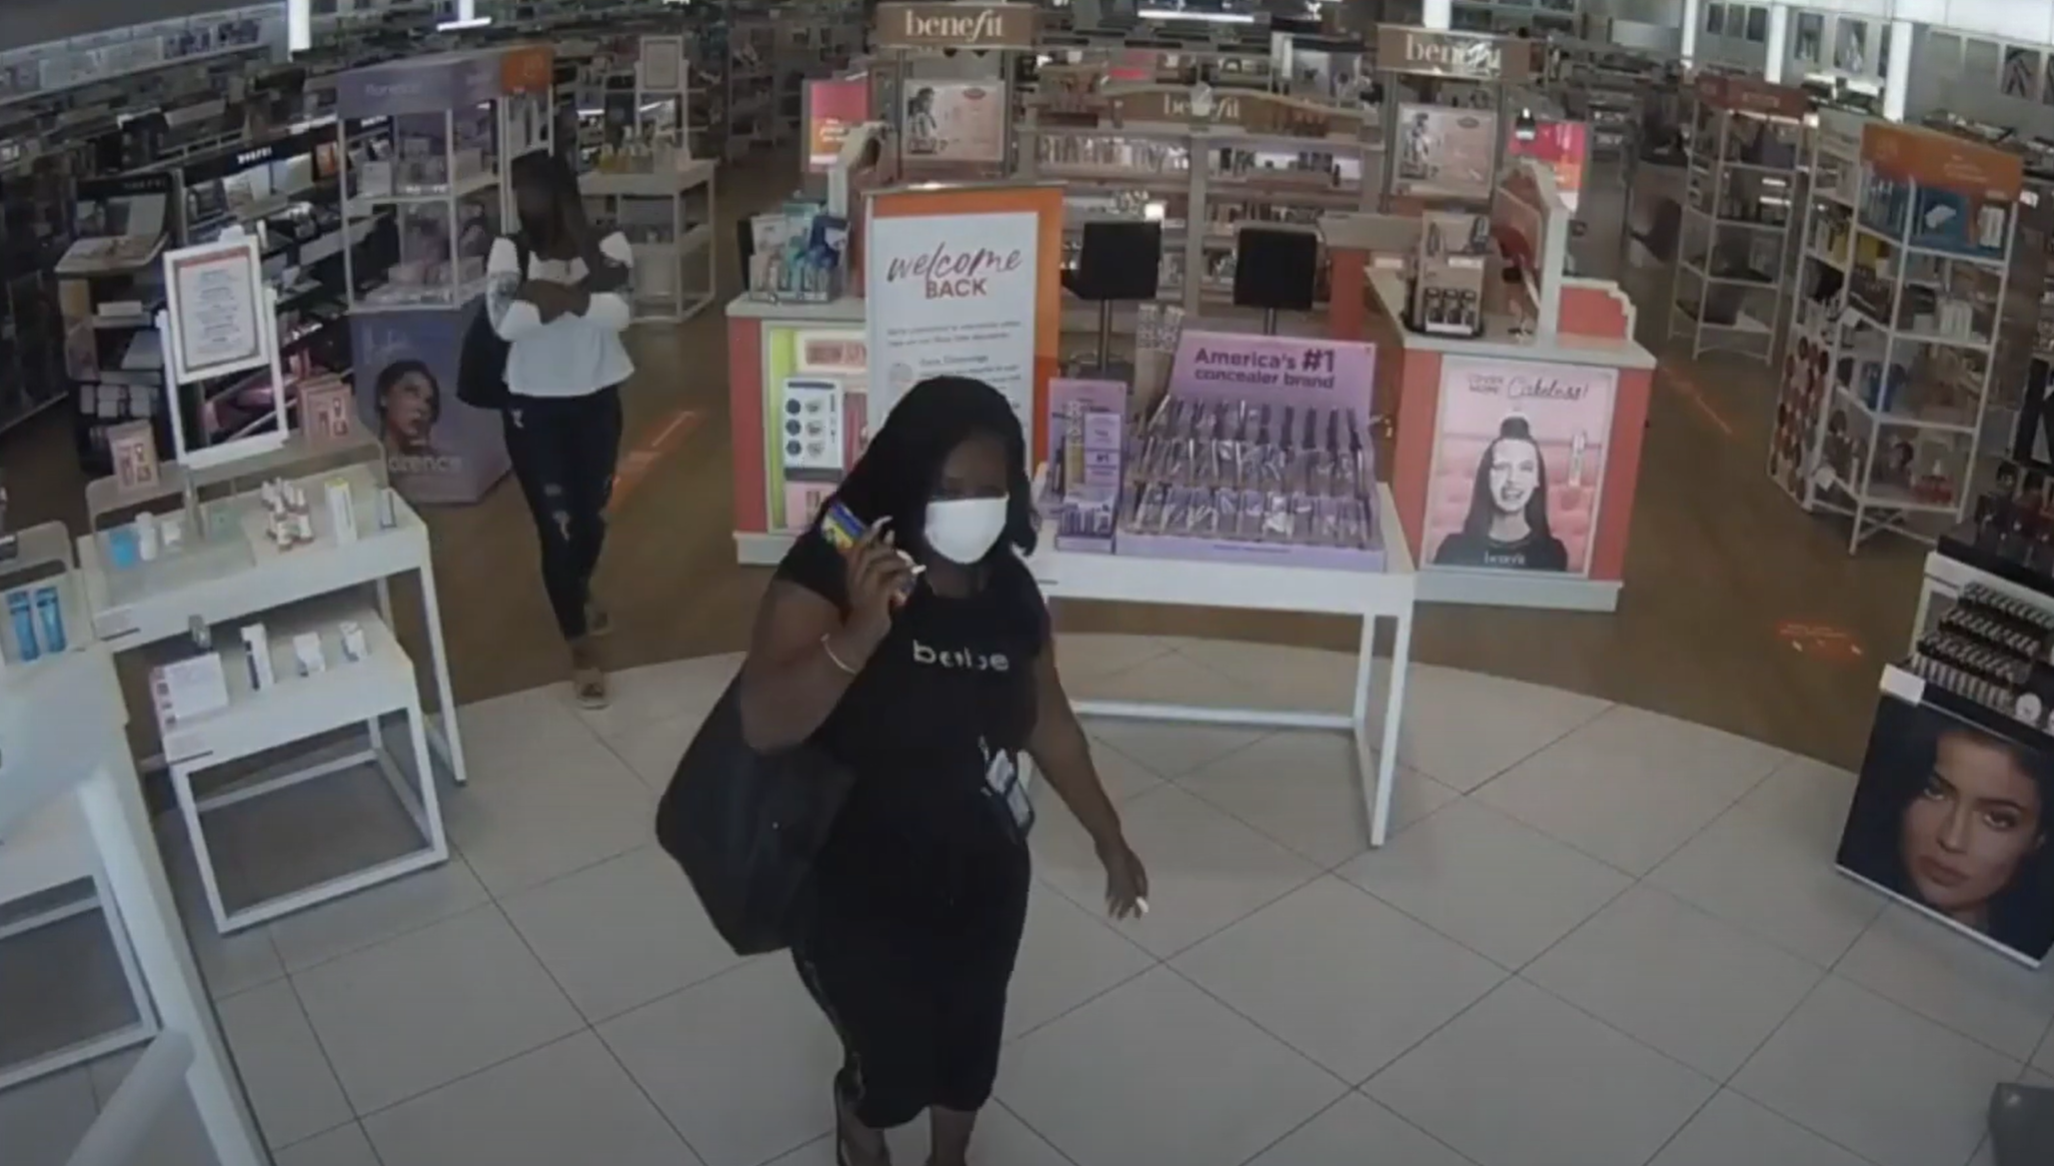 VIDEO: Trussville PD asking for help identifying women suspected in theft at Ulta Beauty